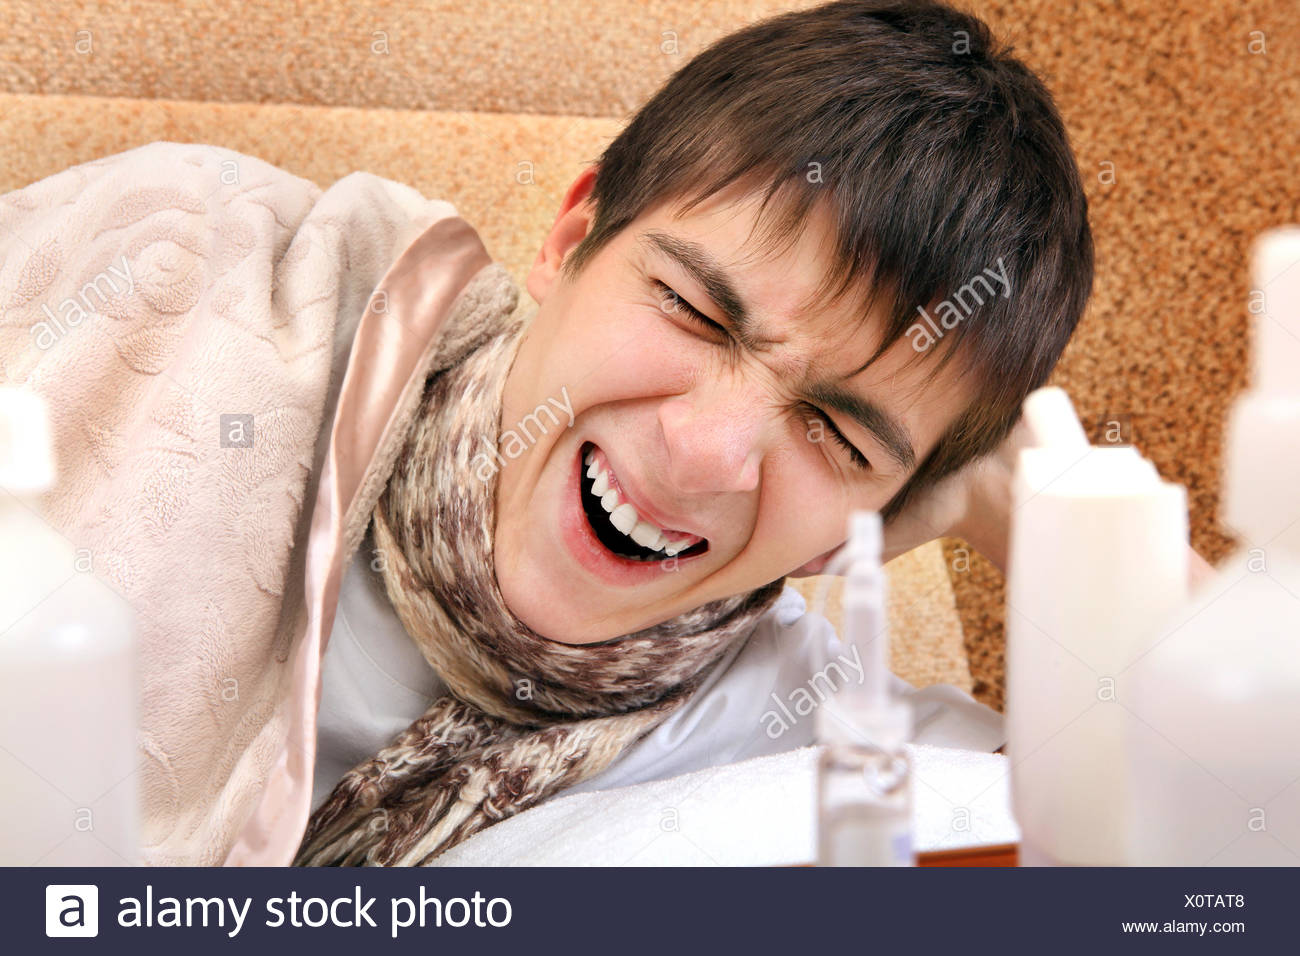 Sick Teenager yawning - Stock Image